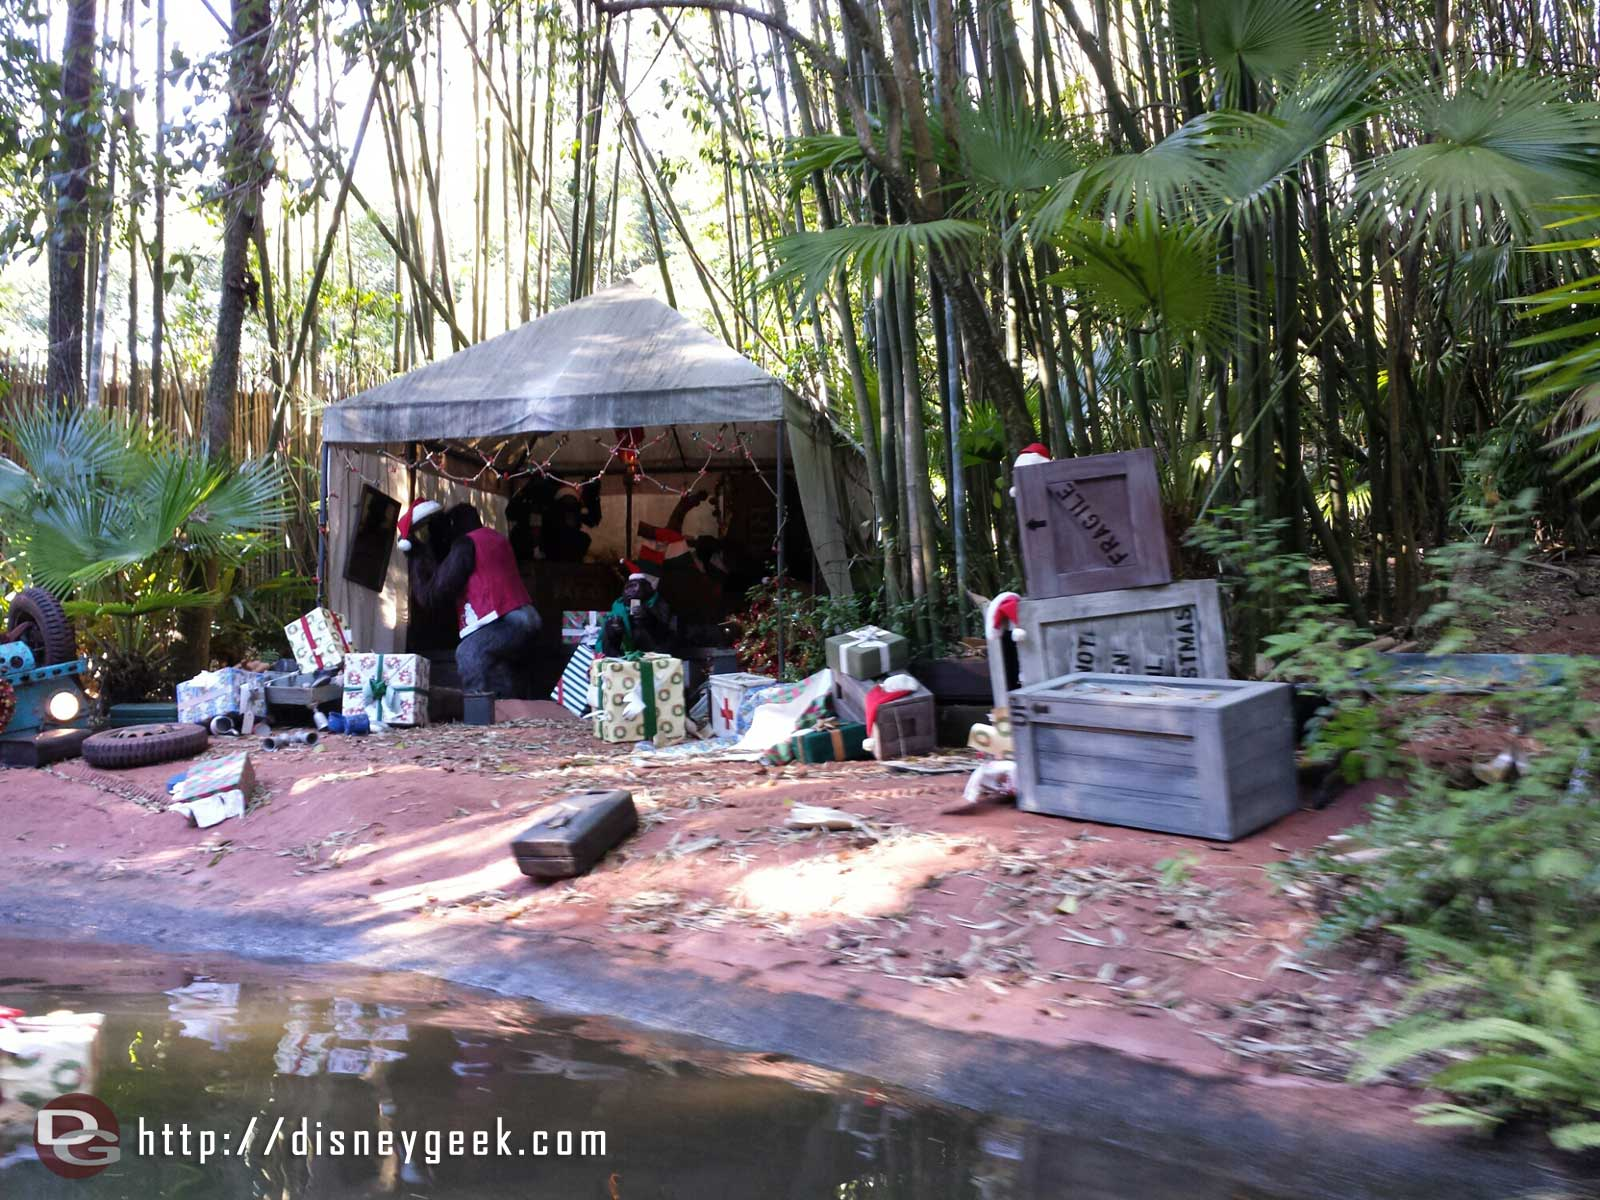 Jingle Cruise Gorilla Encampment